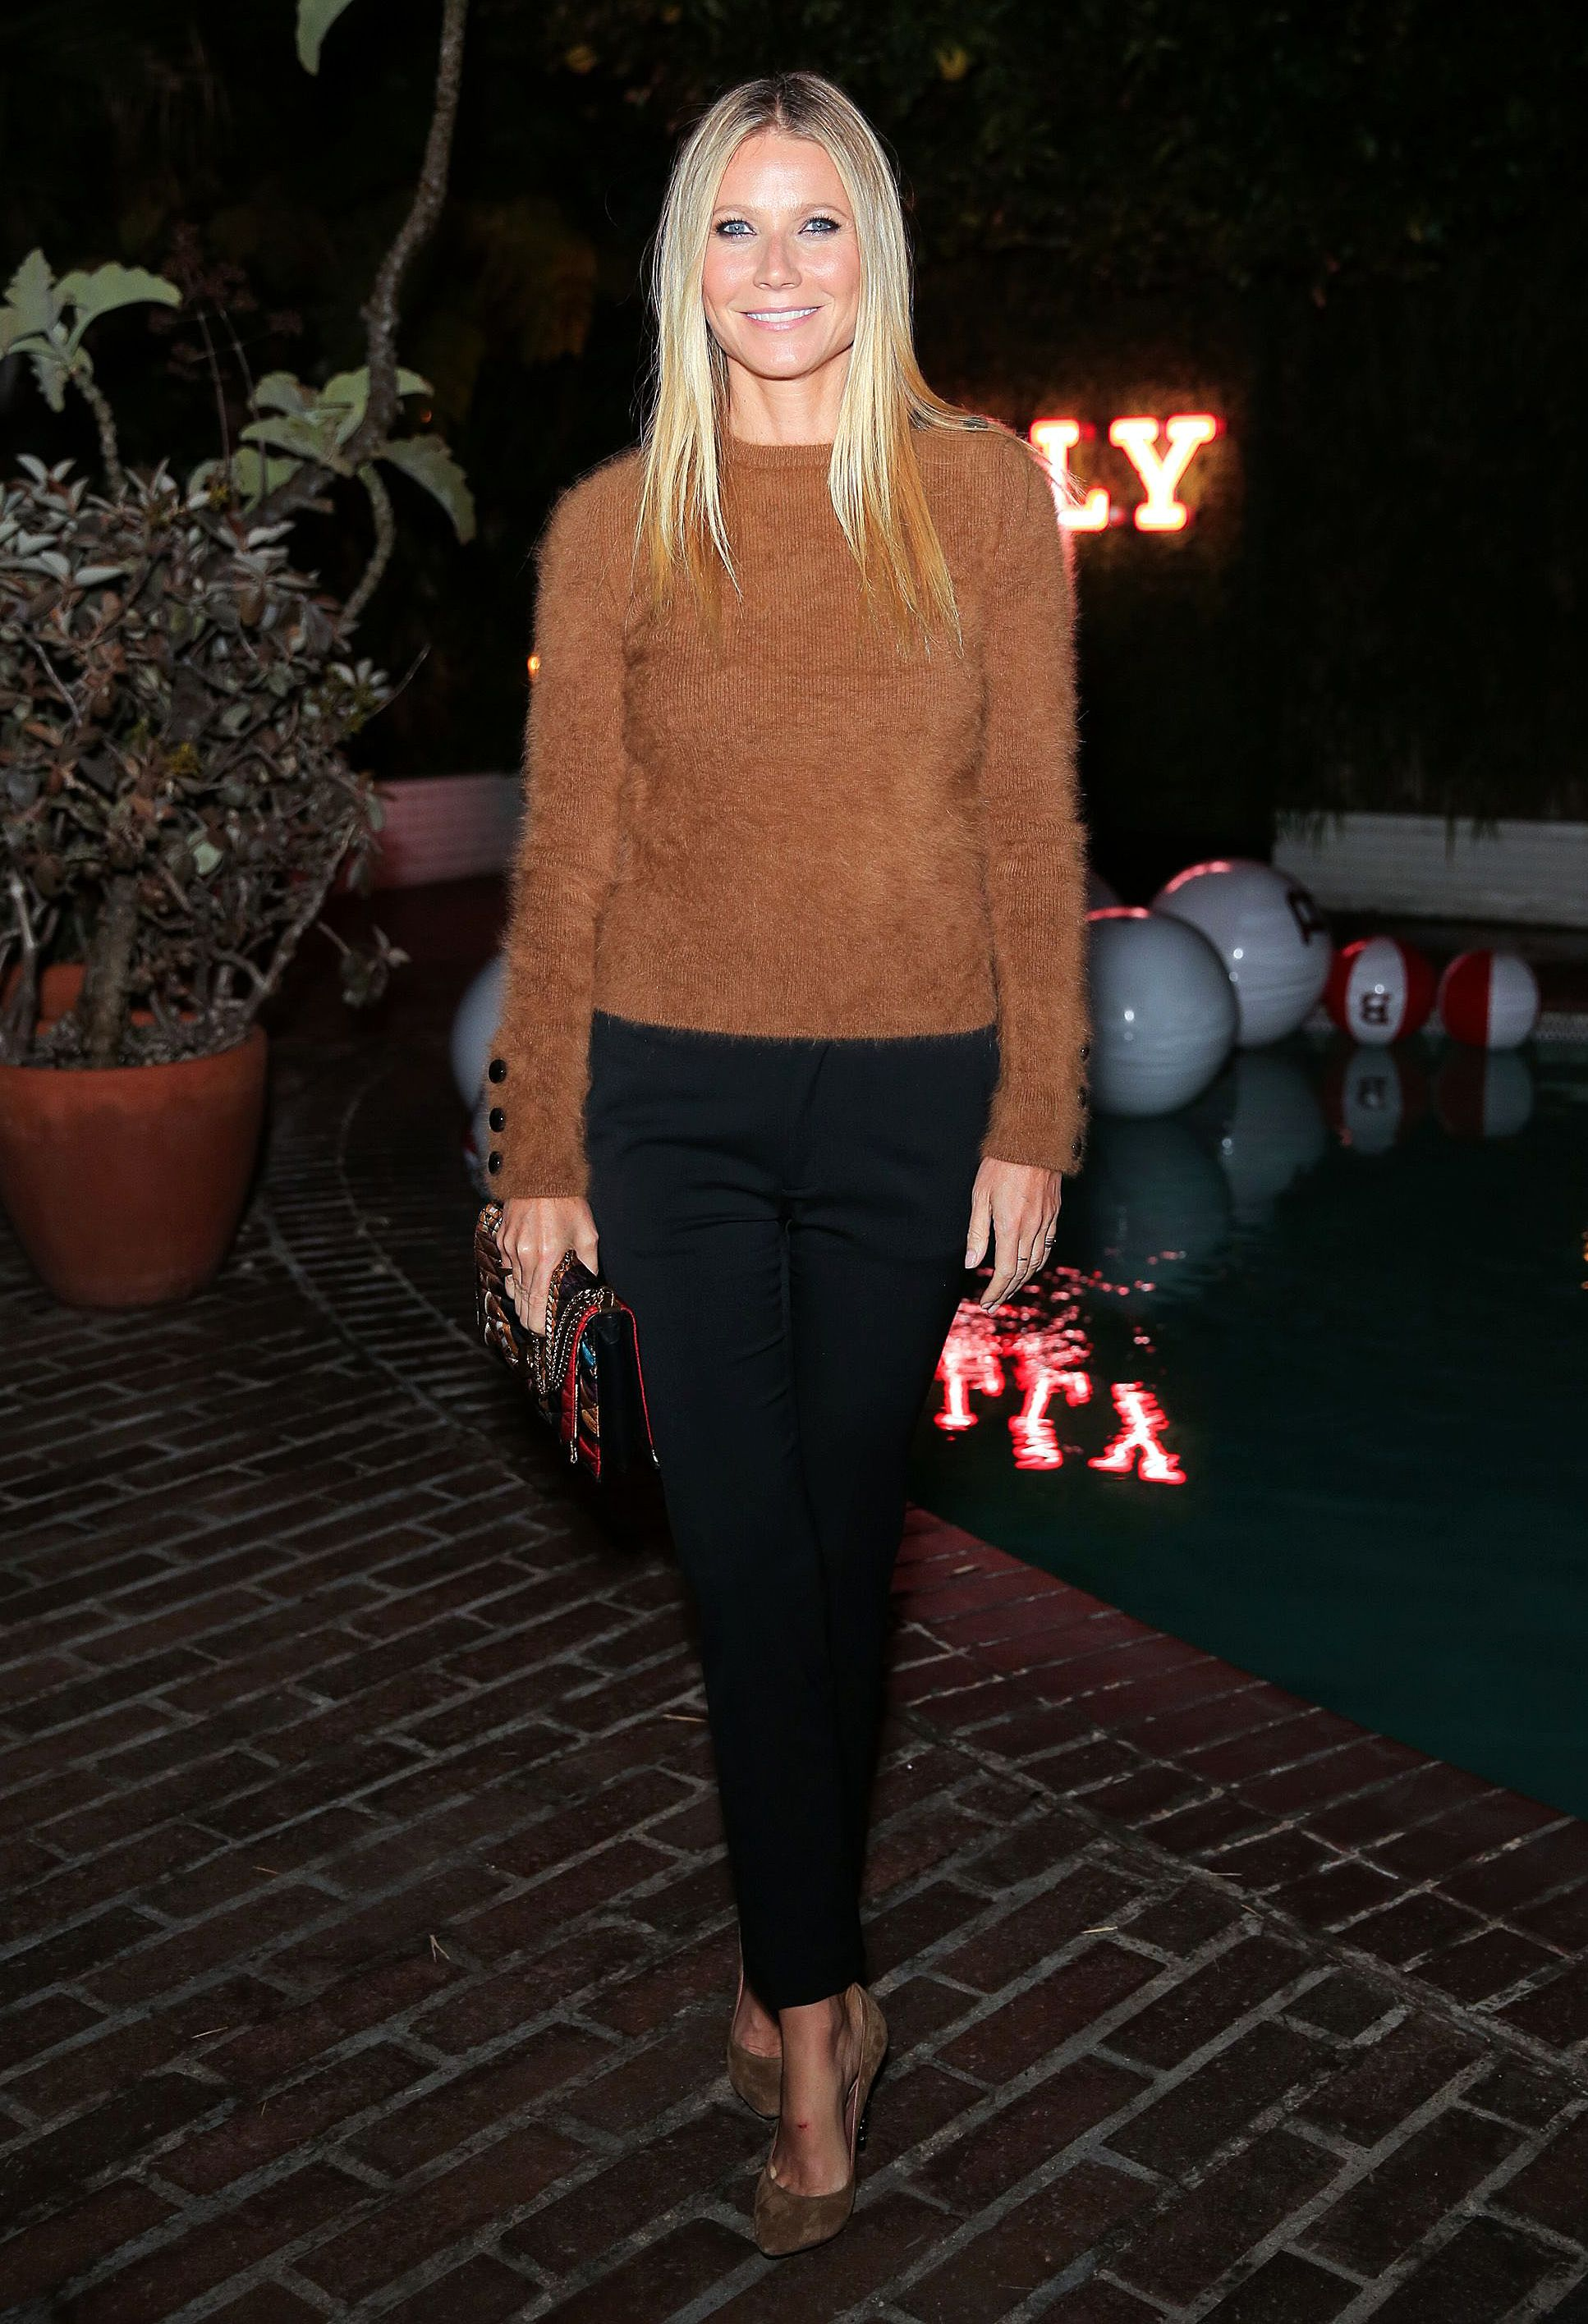 Gwyneth Paltrow AT Bally dinner IN L.A.